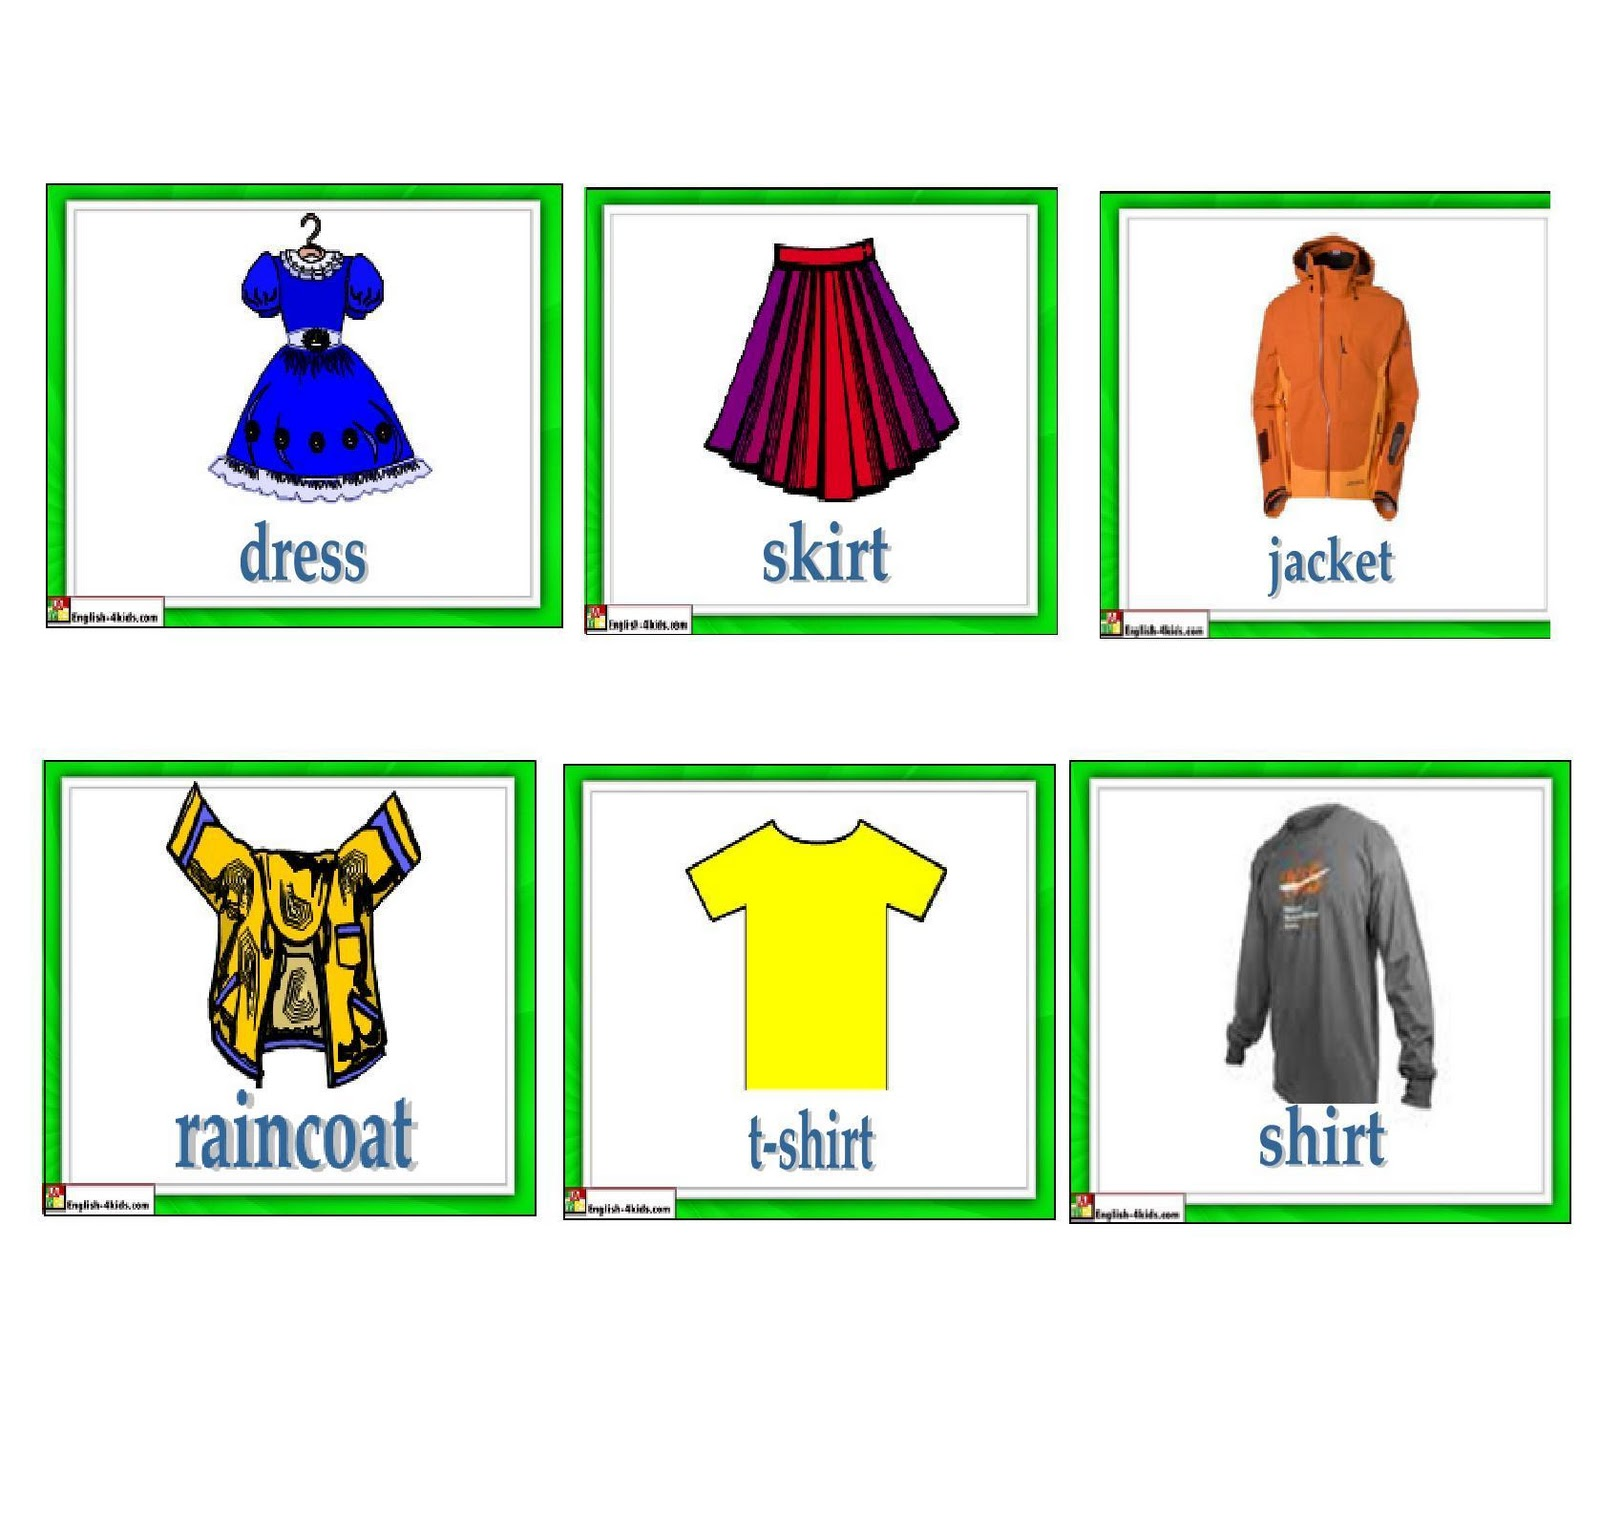 english lessons children lesson 17 clothes and colors